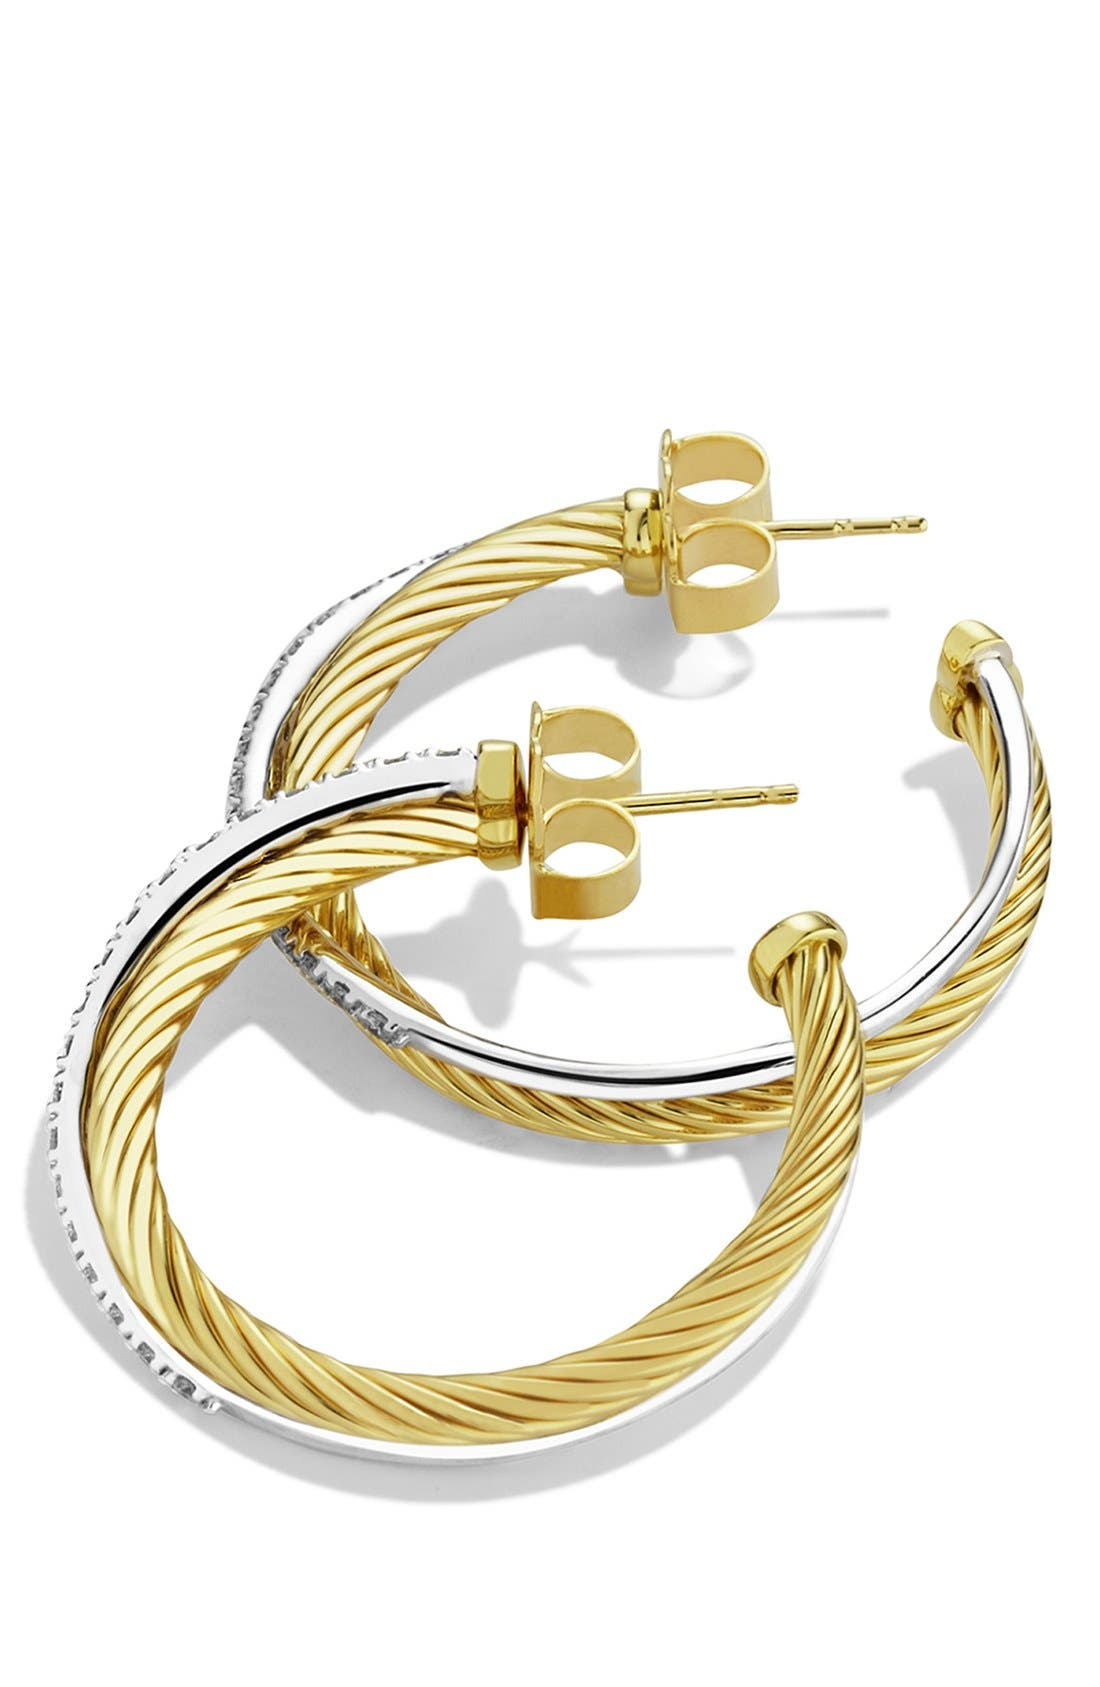 'Crossover' Medium Hoop Earrings with Diamonds in Gold,                             Main thumbnail 1, color,                             DIAMOND